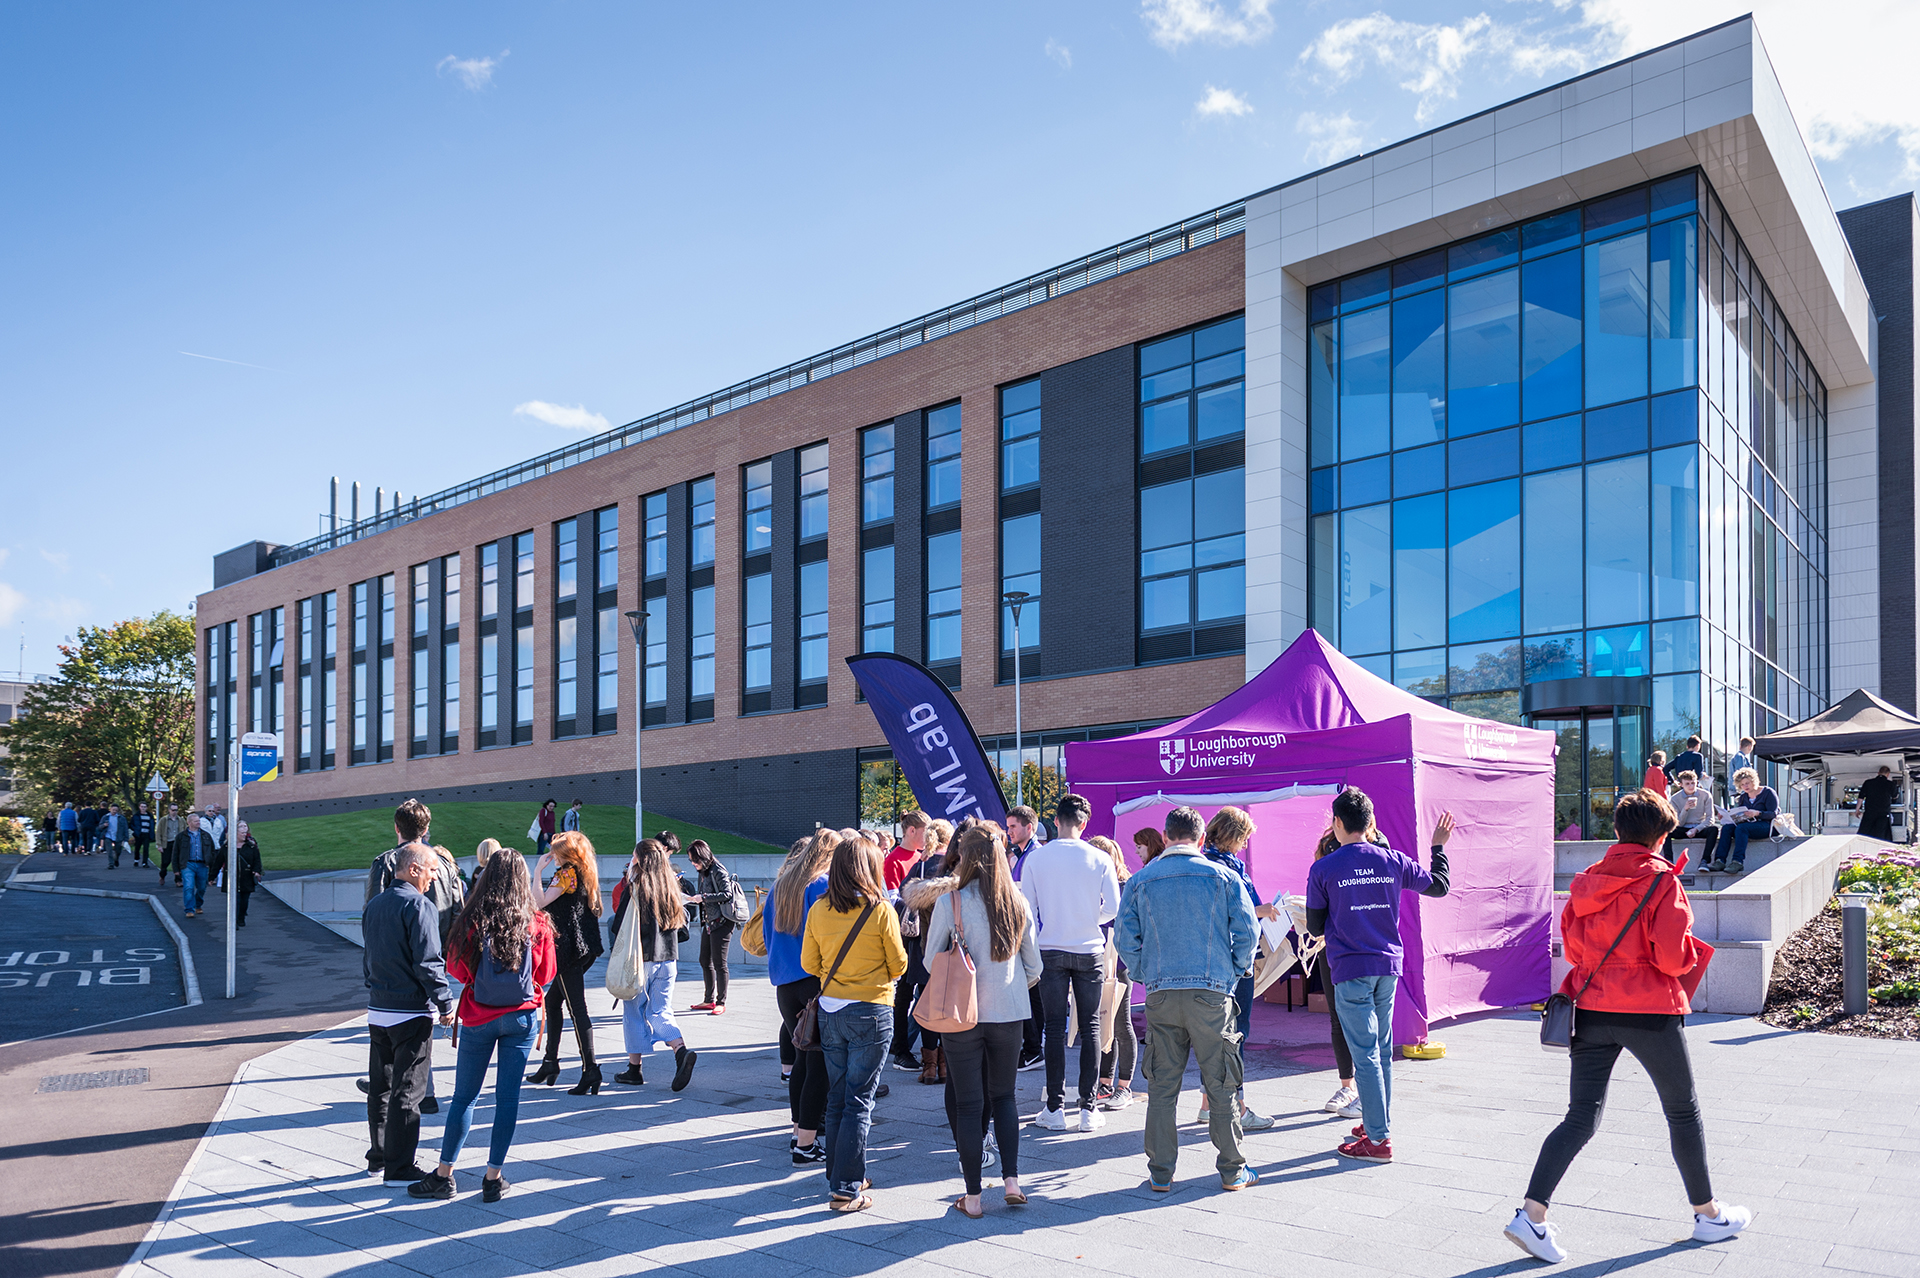 Make the most of your #LboroOpenDay